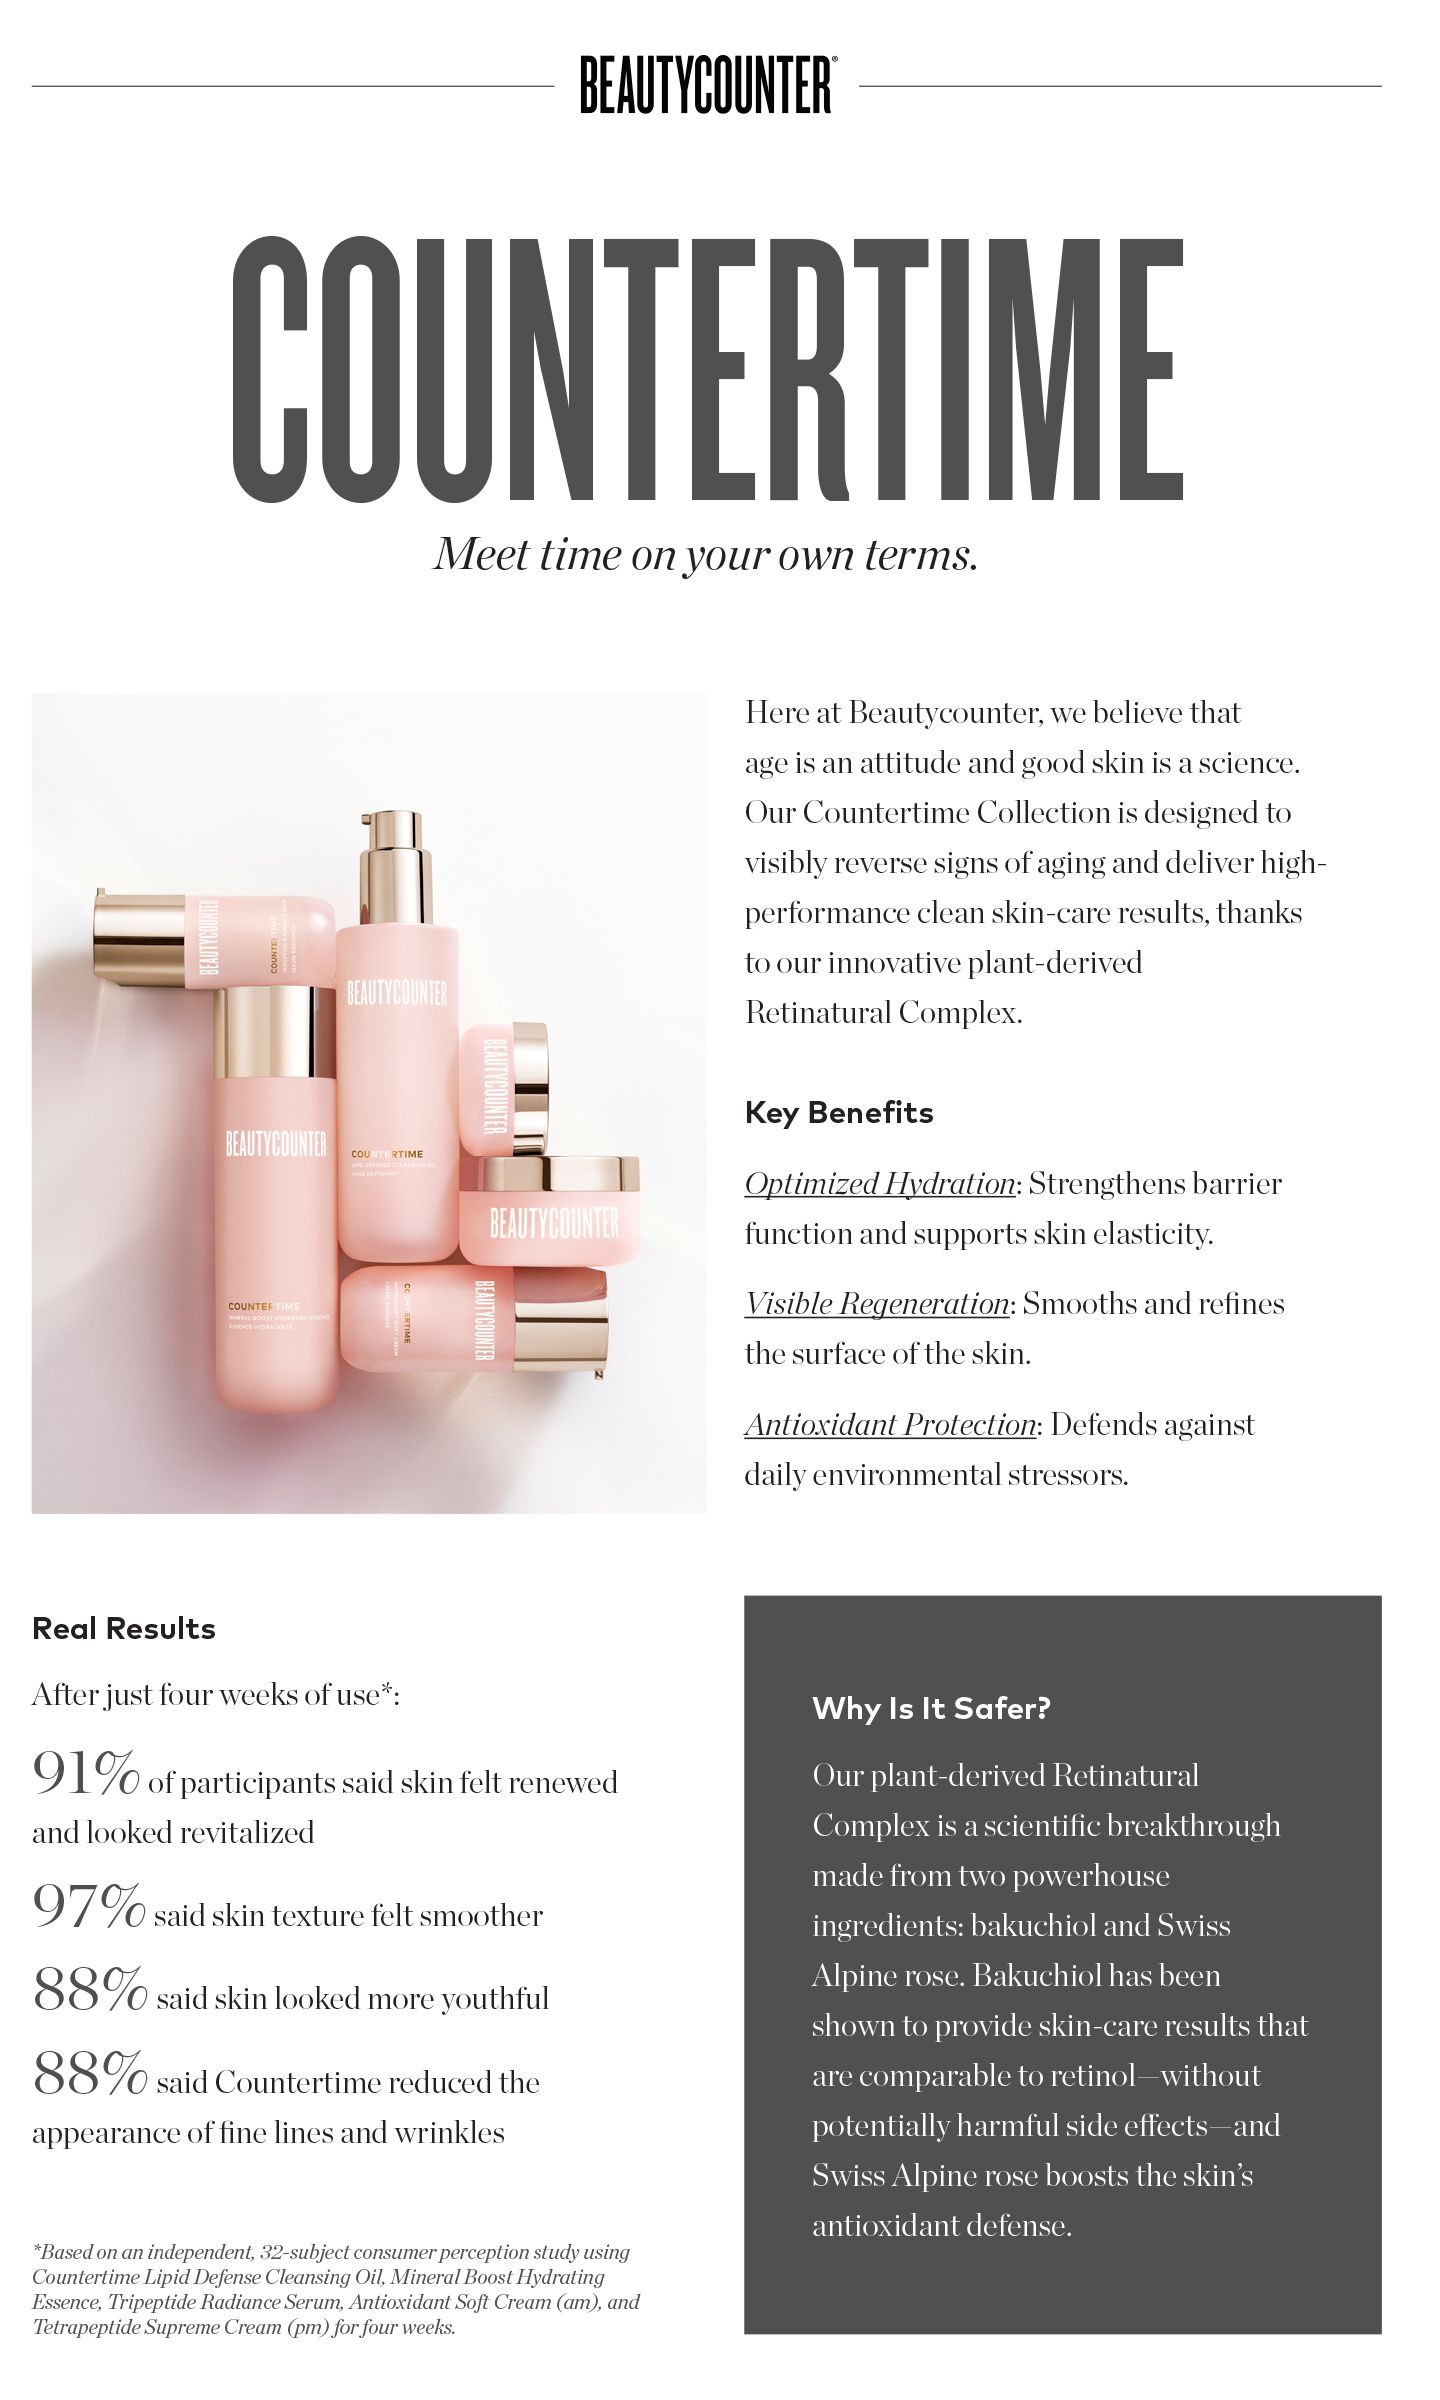 Countertime by Beautycounter Safe skincare, Clean